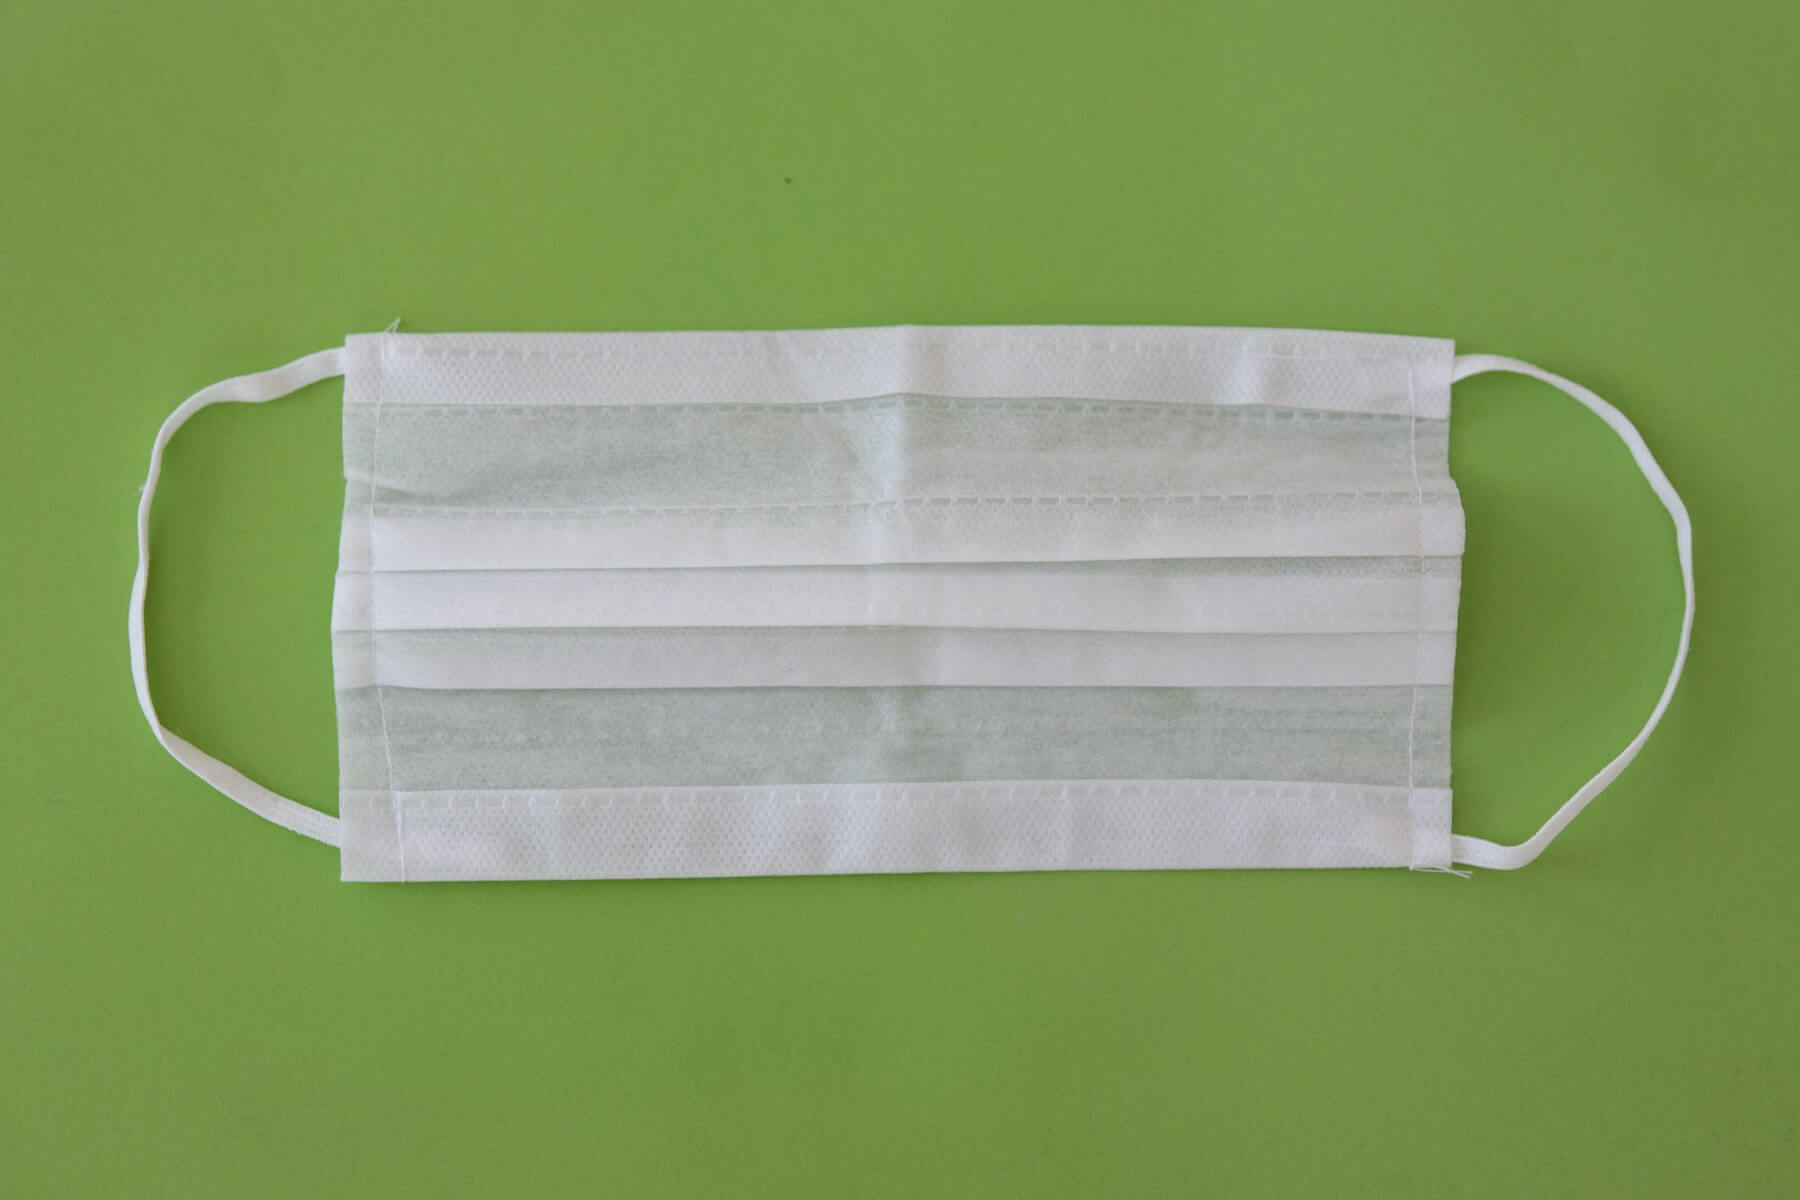 surgical mask procedural mask on green background covid19 how to help